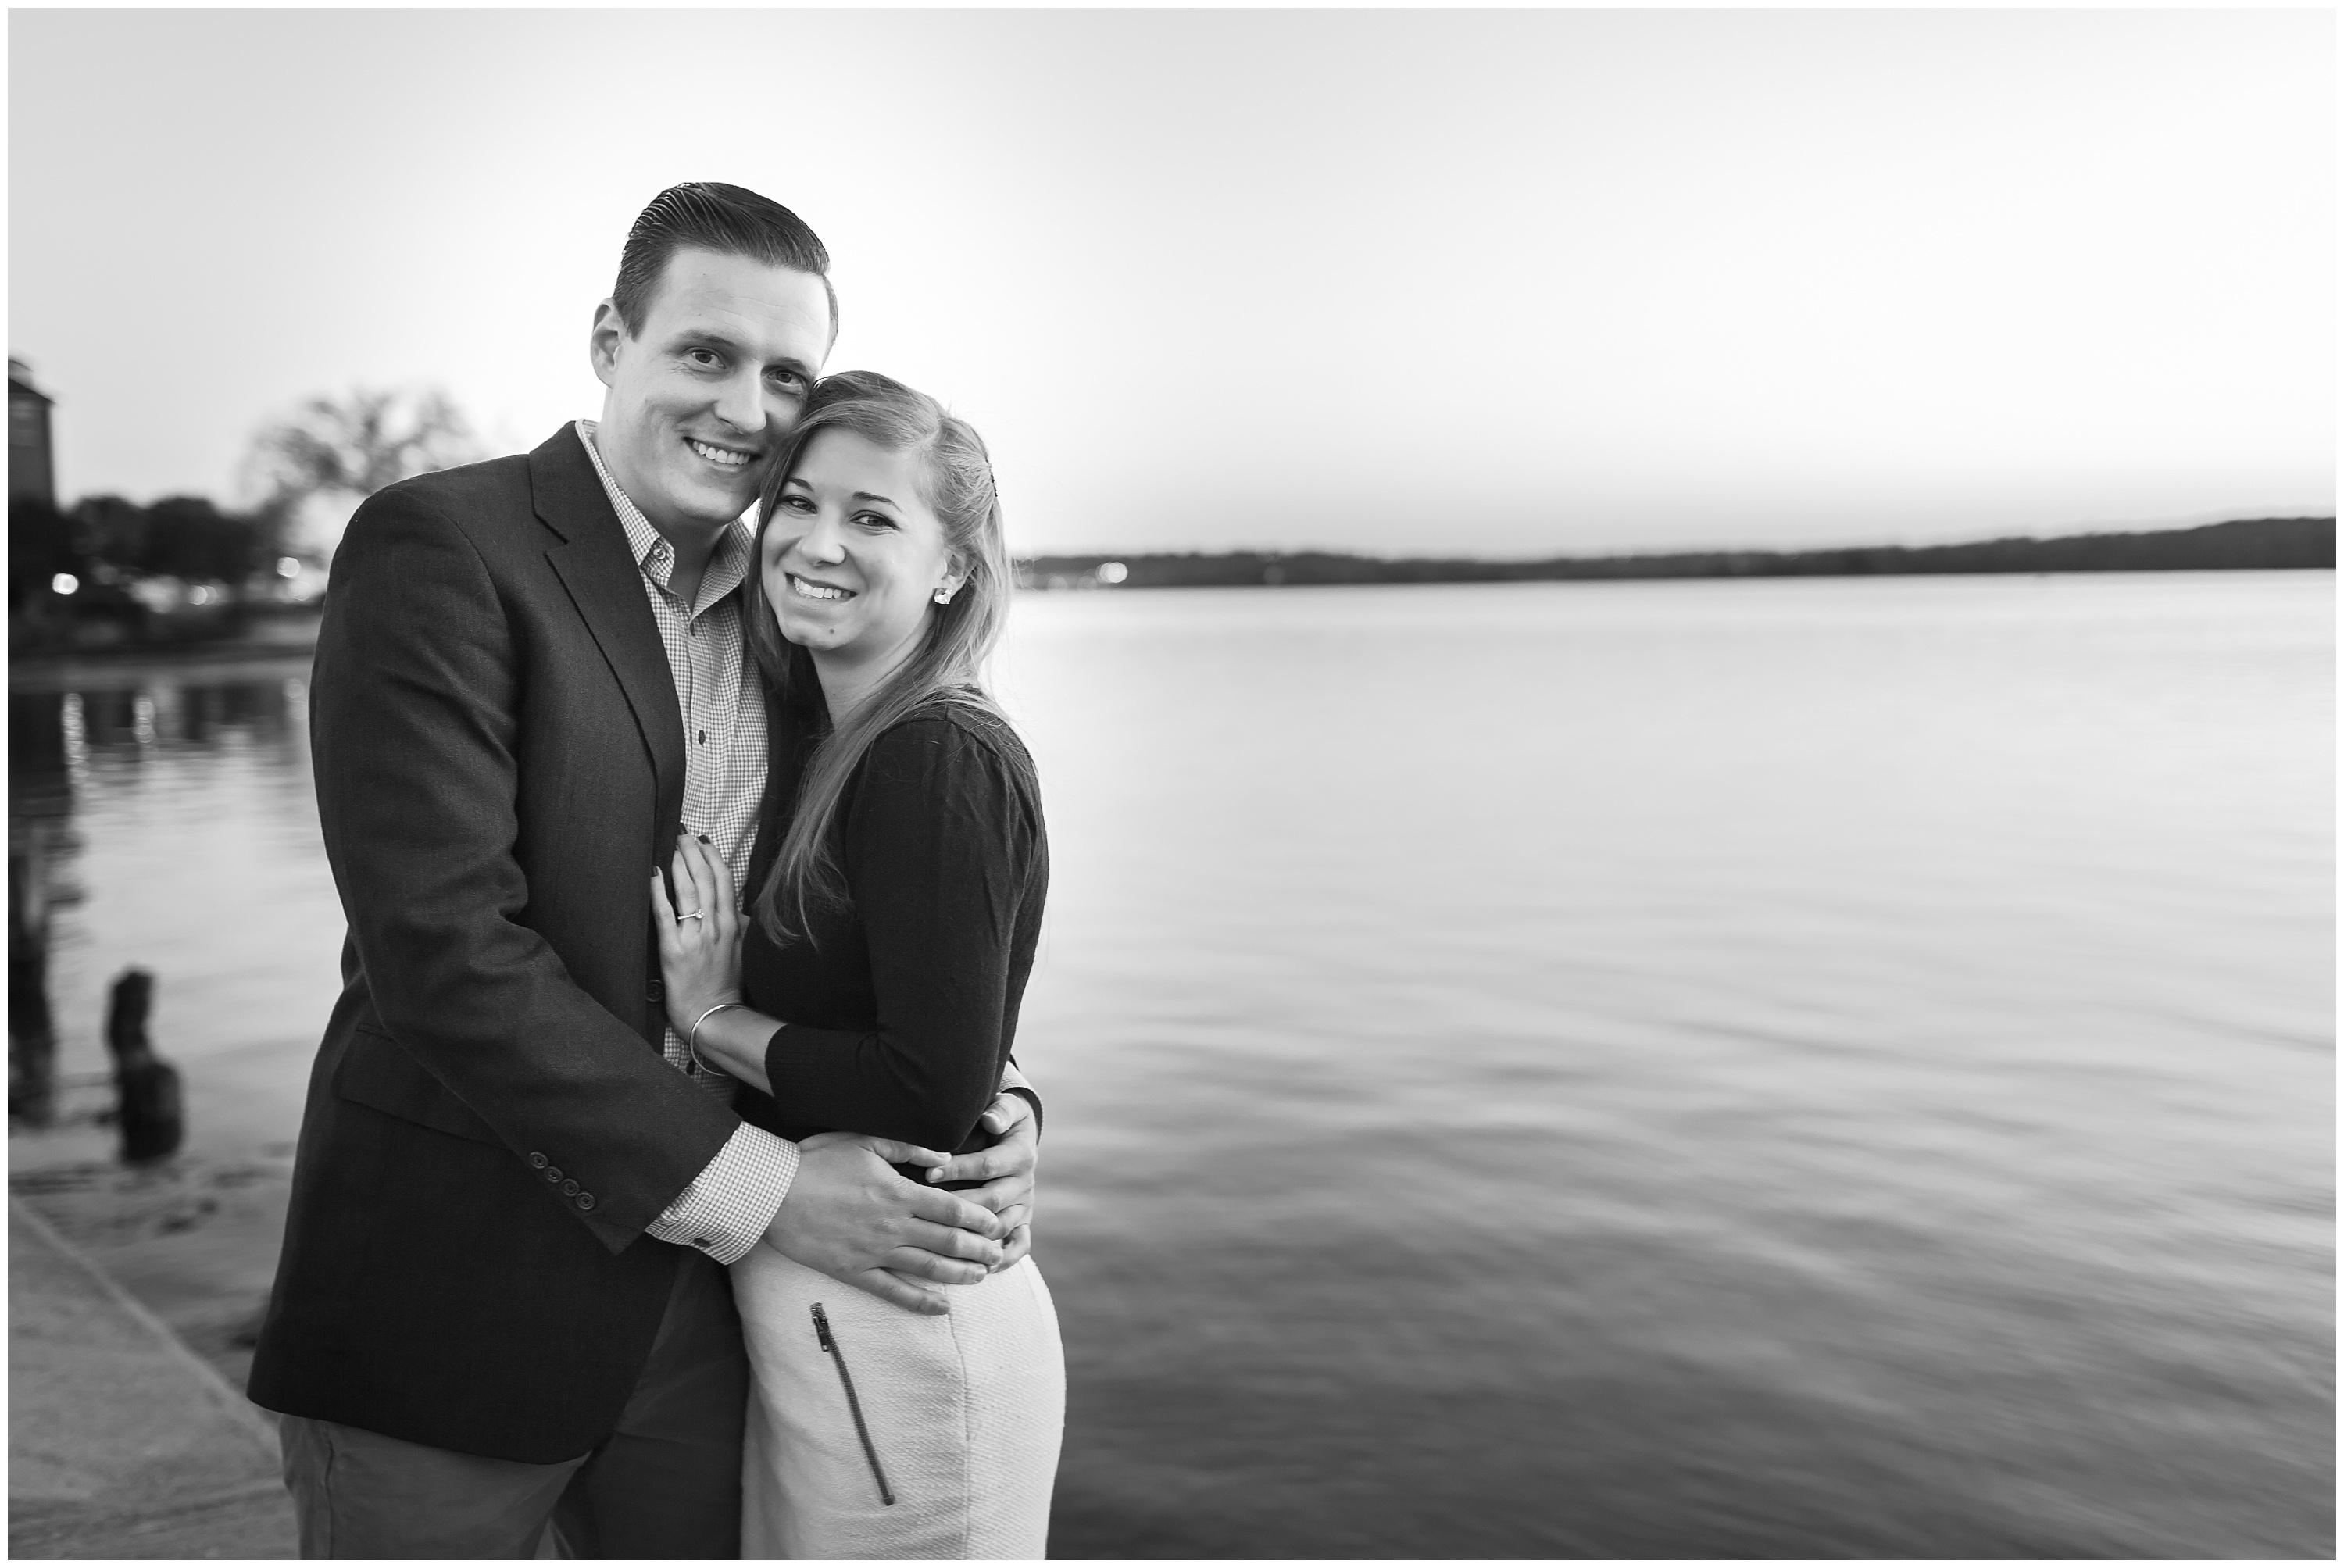 Sofia-John-Waterfront-Alexandria-Wilkes-Tunnel-DC-Engagement00003